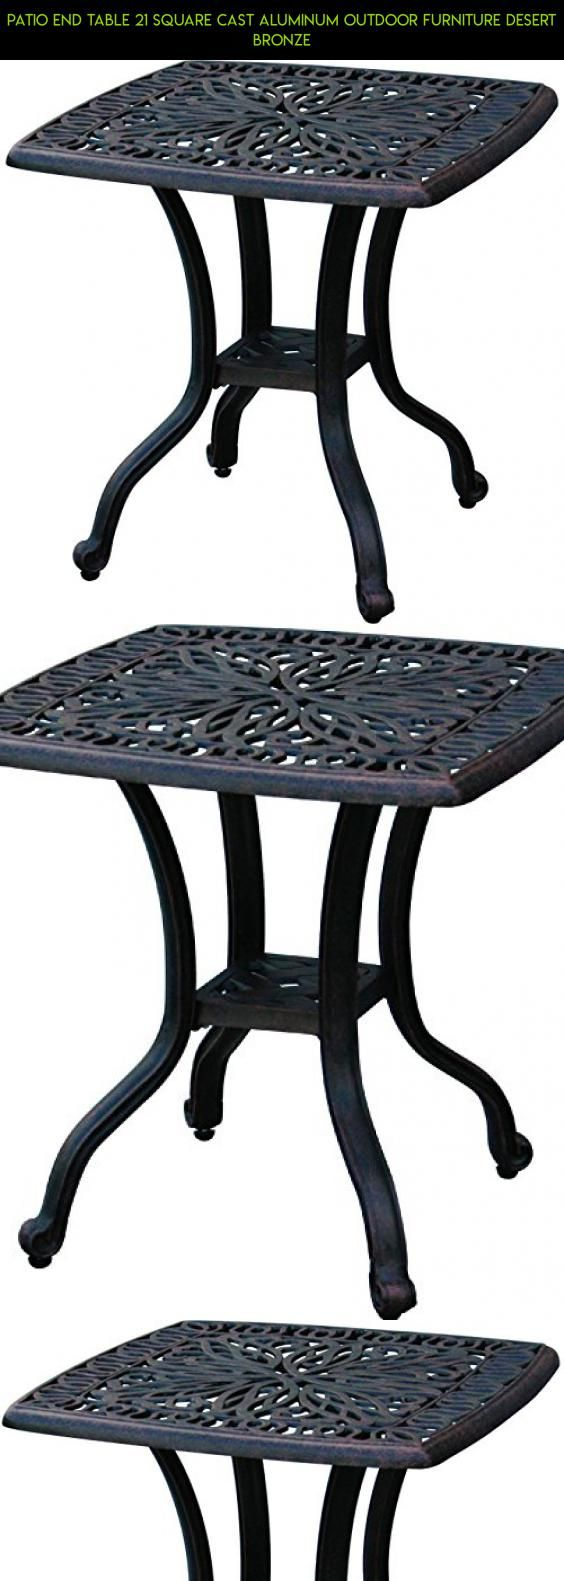 Best 25+ Patio Furniture Clearance Ideas On Pinterest | Clearance Furniture,  Wicker Patio Furniture Clearance And Clearance Outdoor Furniture